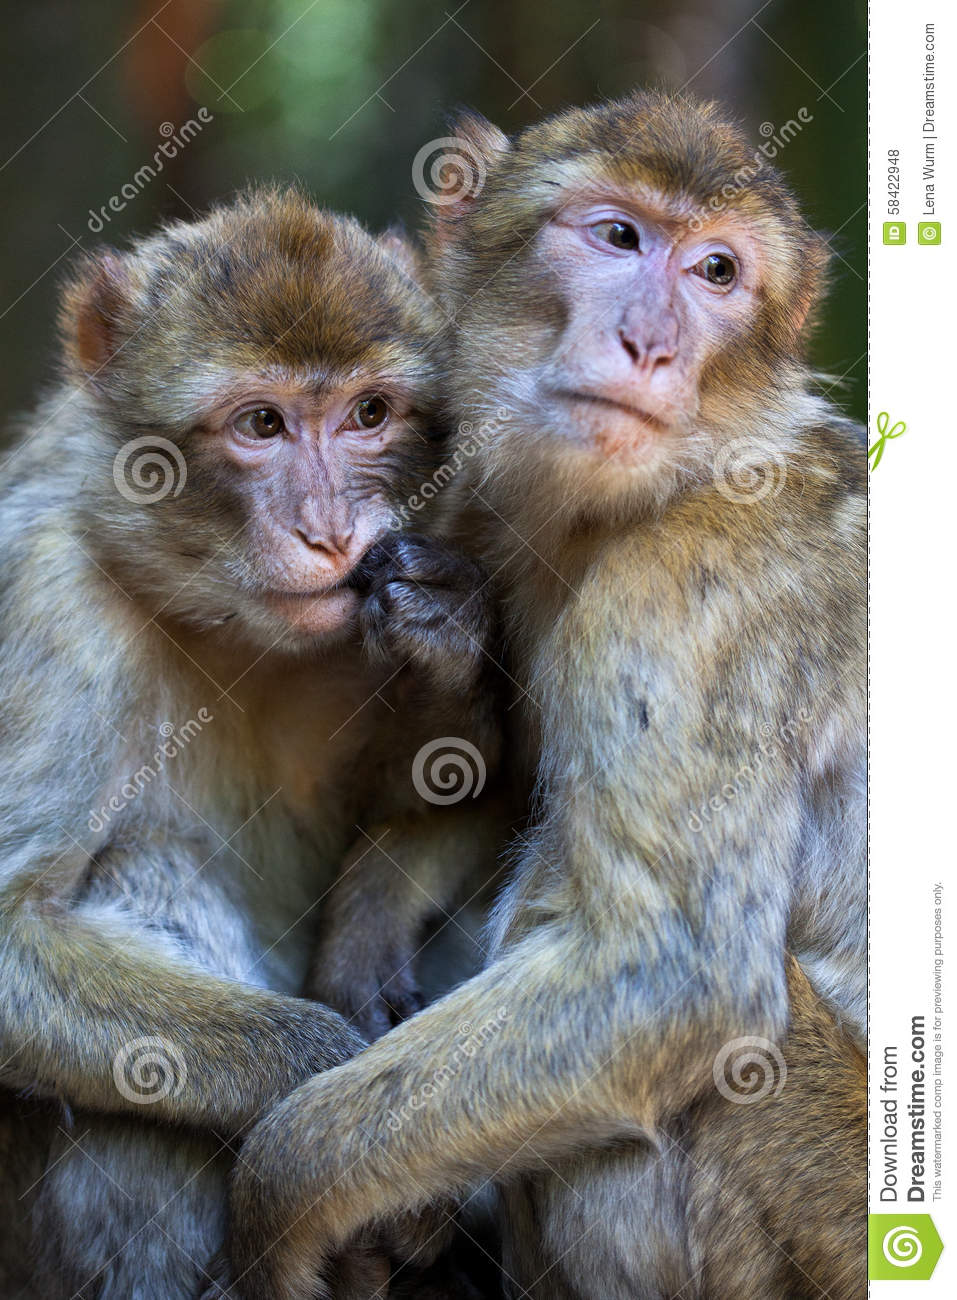 Barbery Apes, Familiarity Stock Photo - Image: 58422948